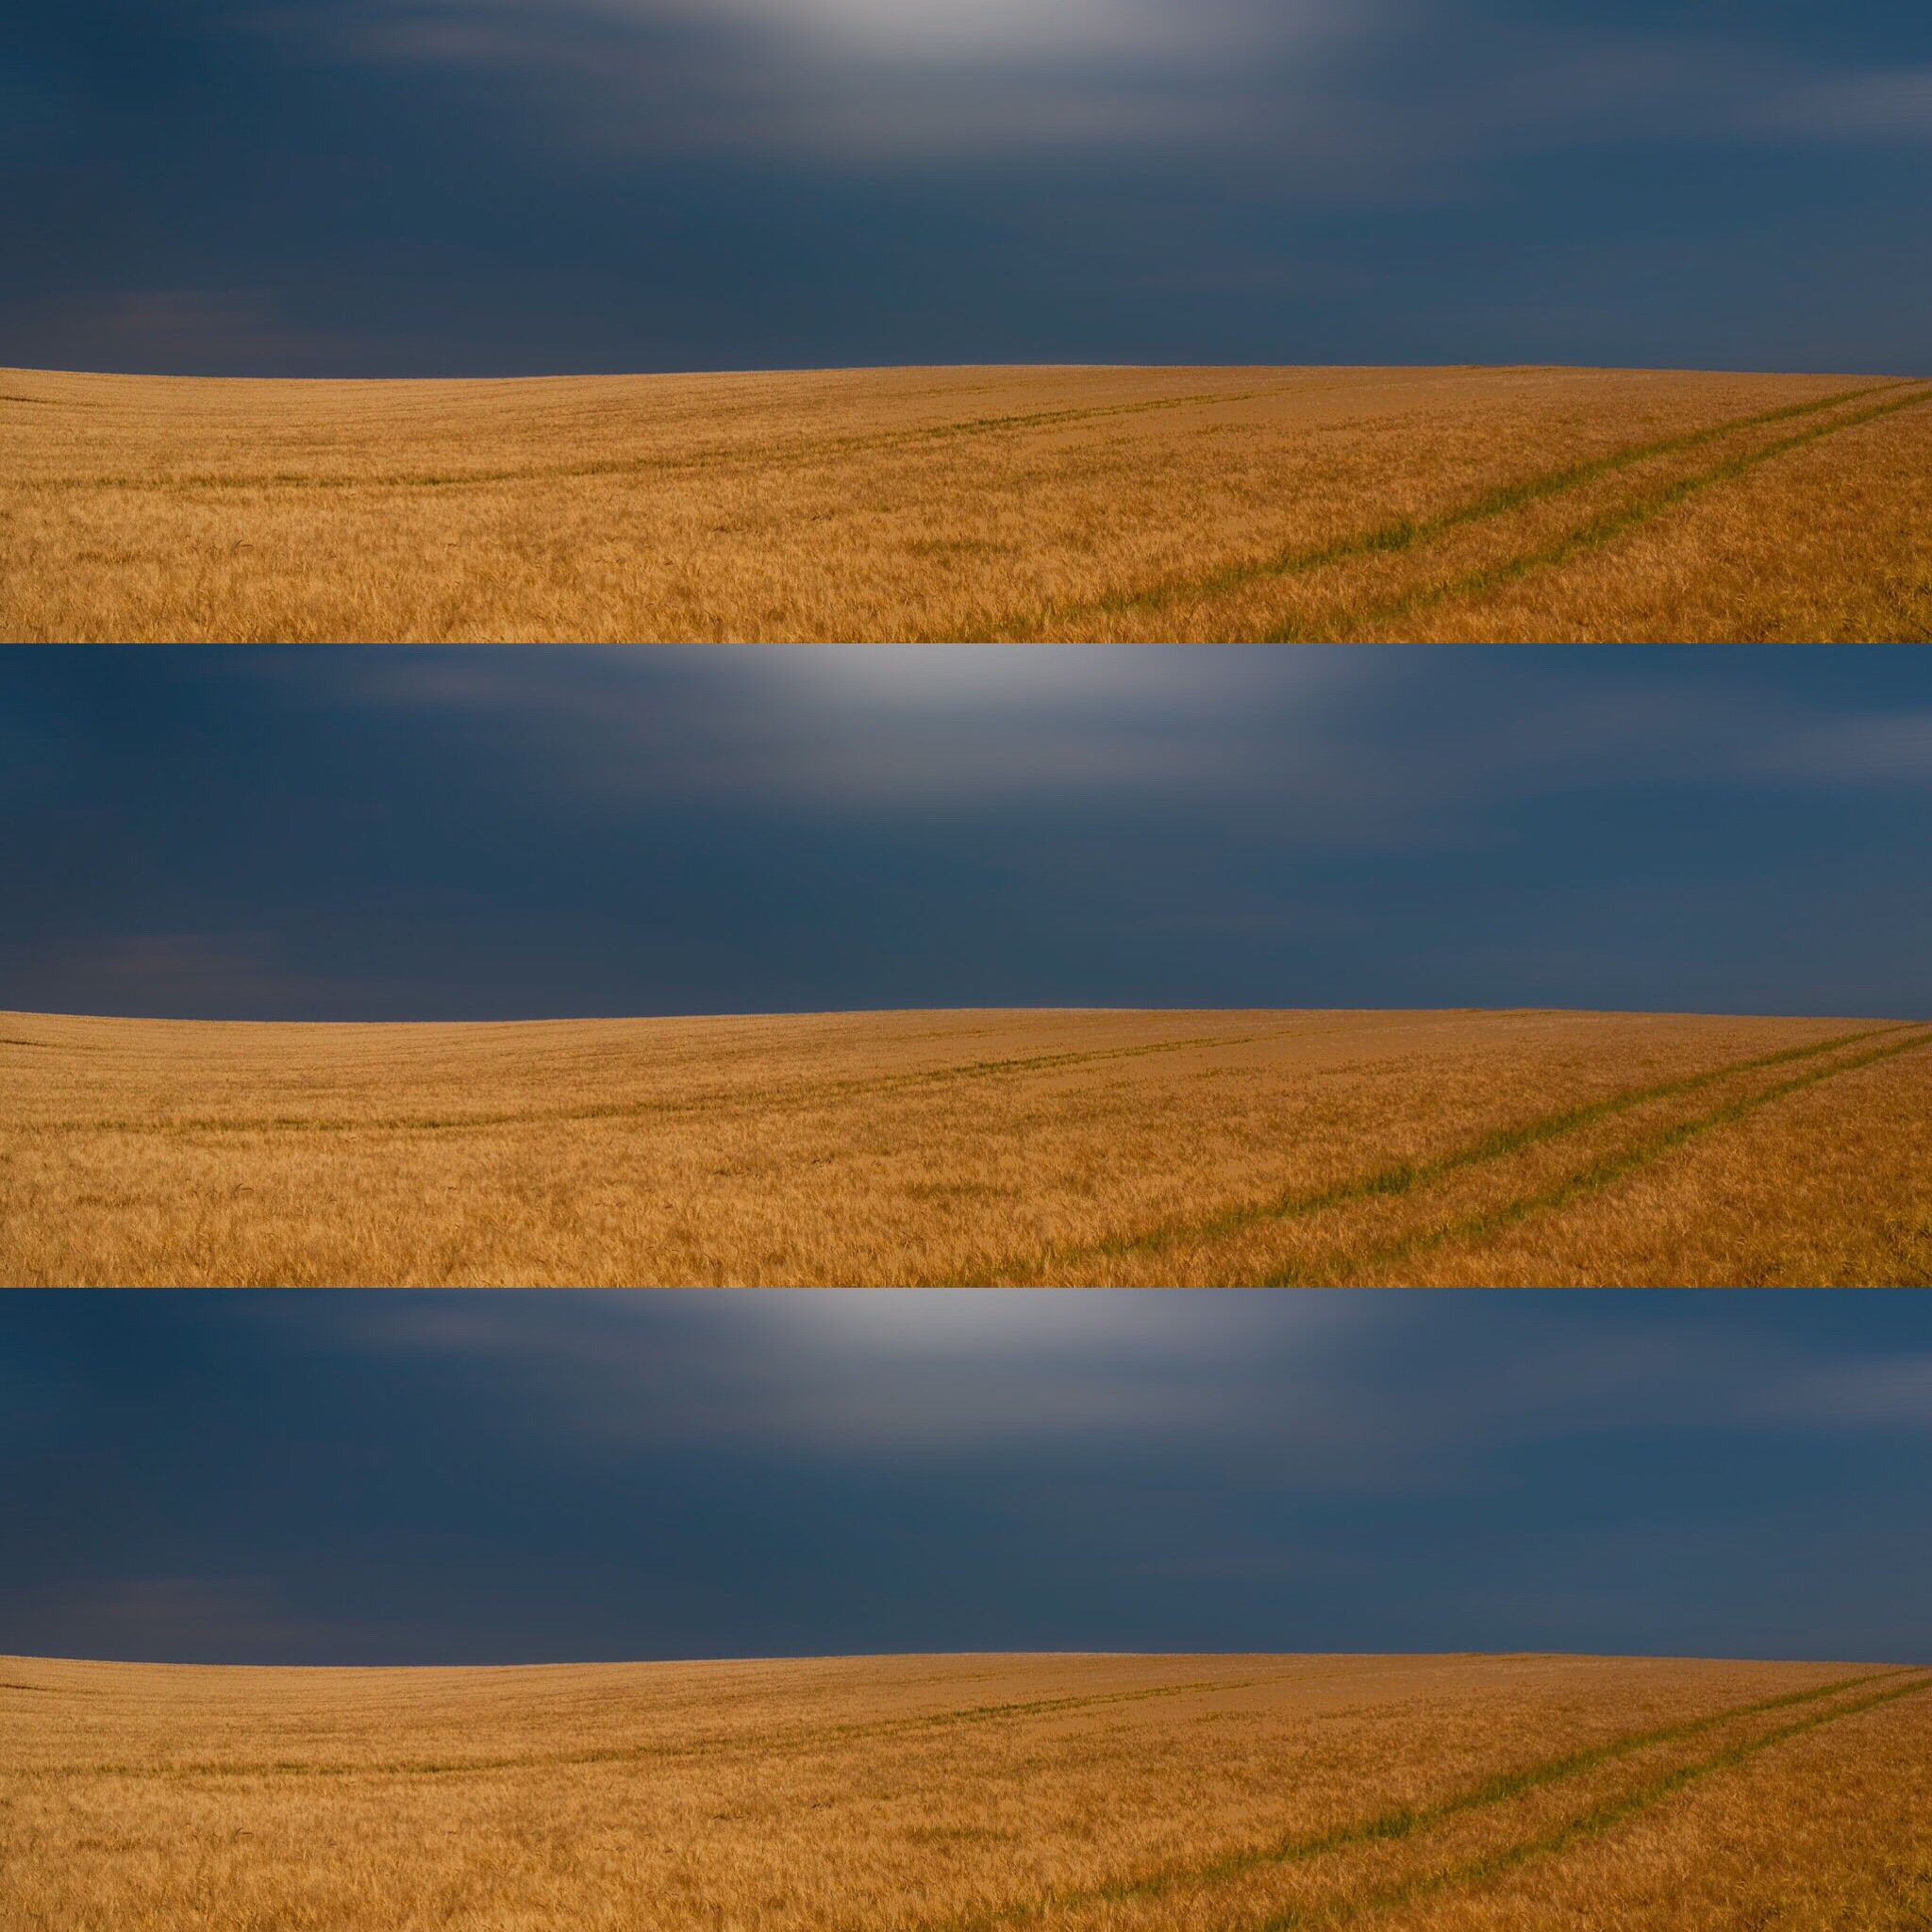 3 Dorset fields Landscape photography in Dorset by Rick McEvoy